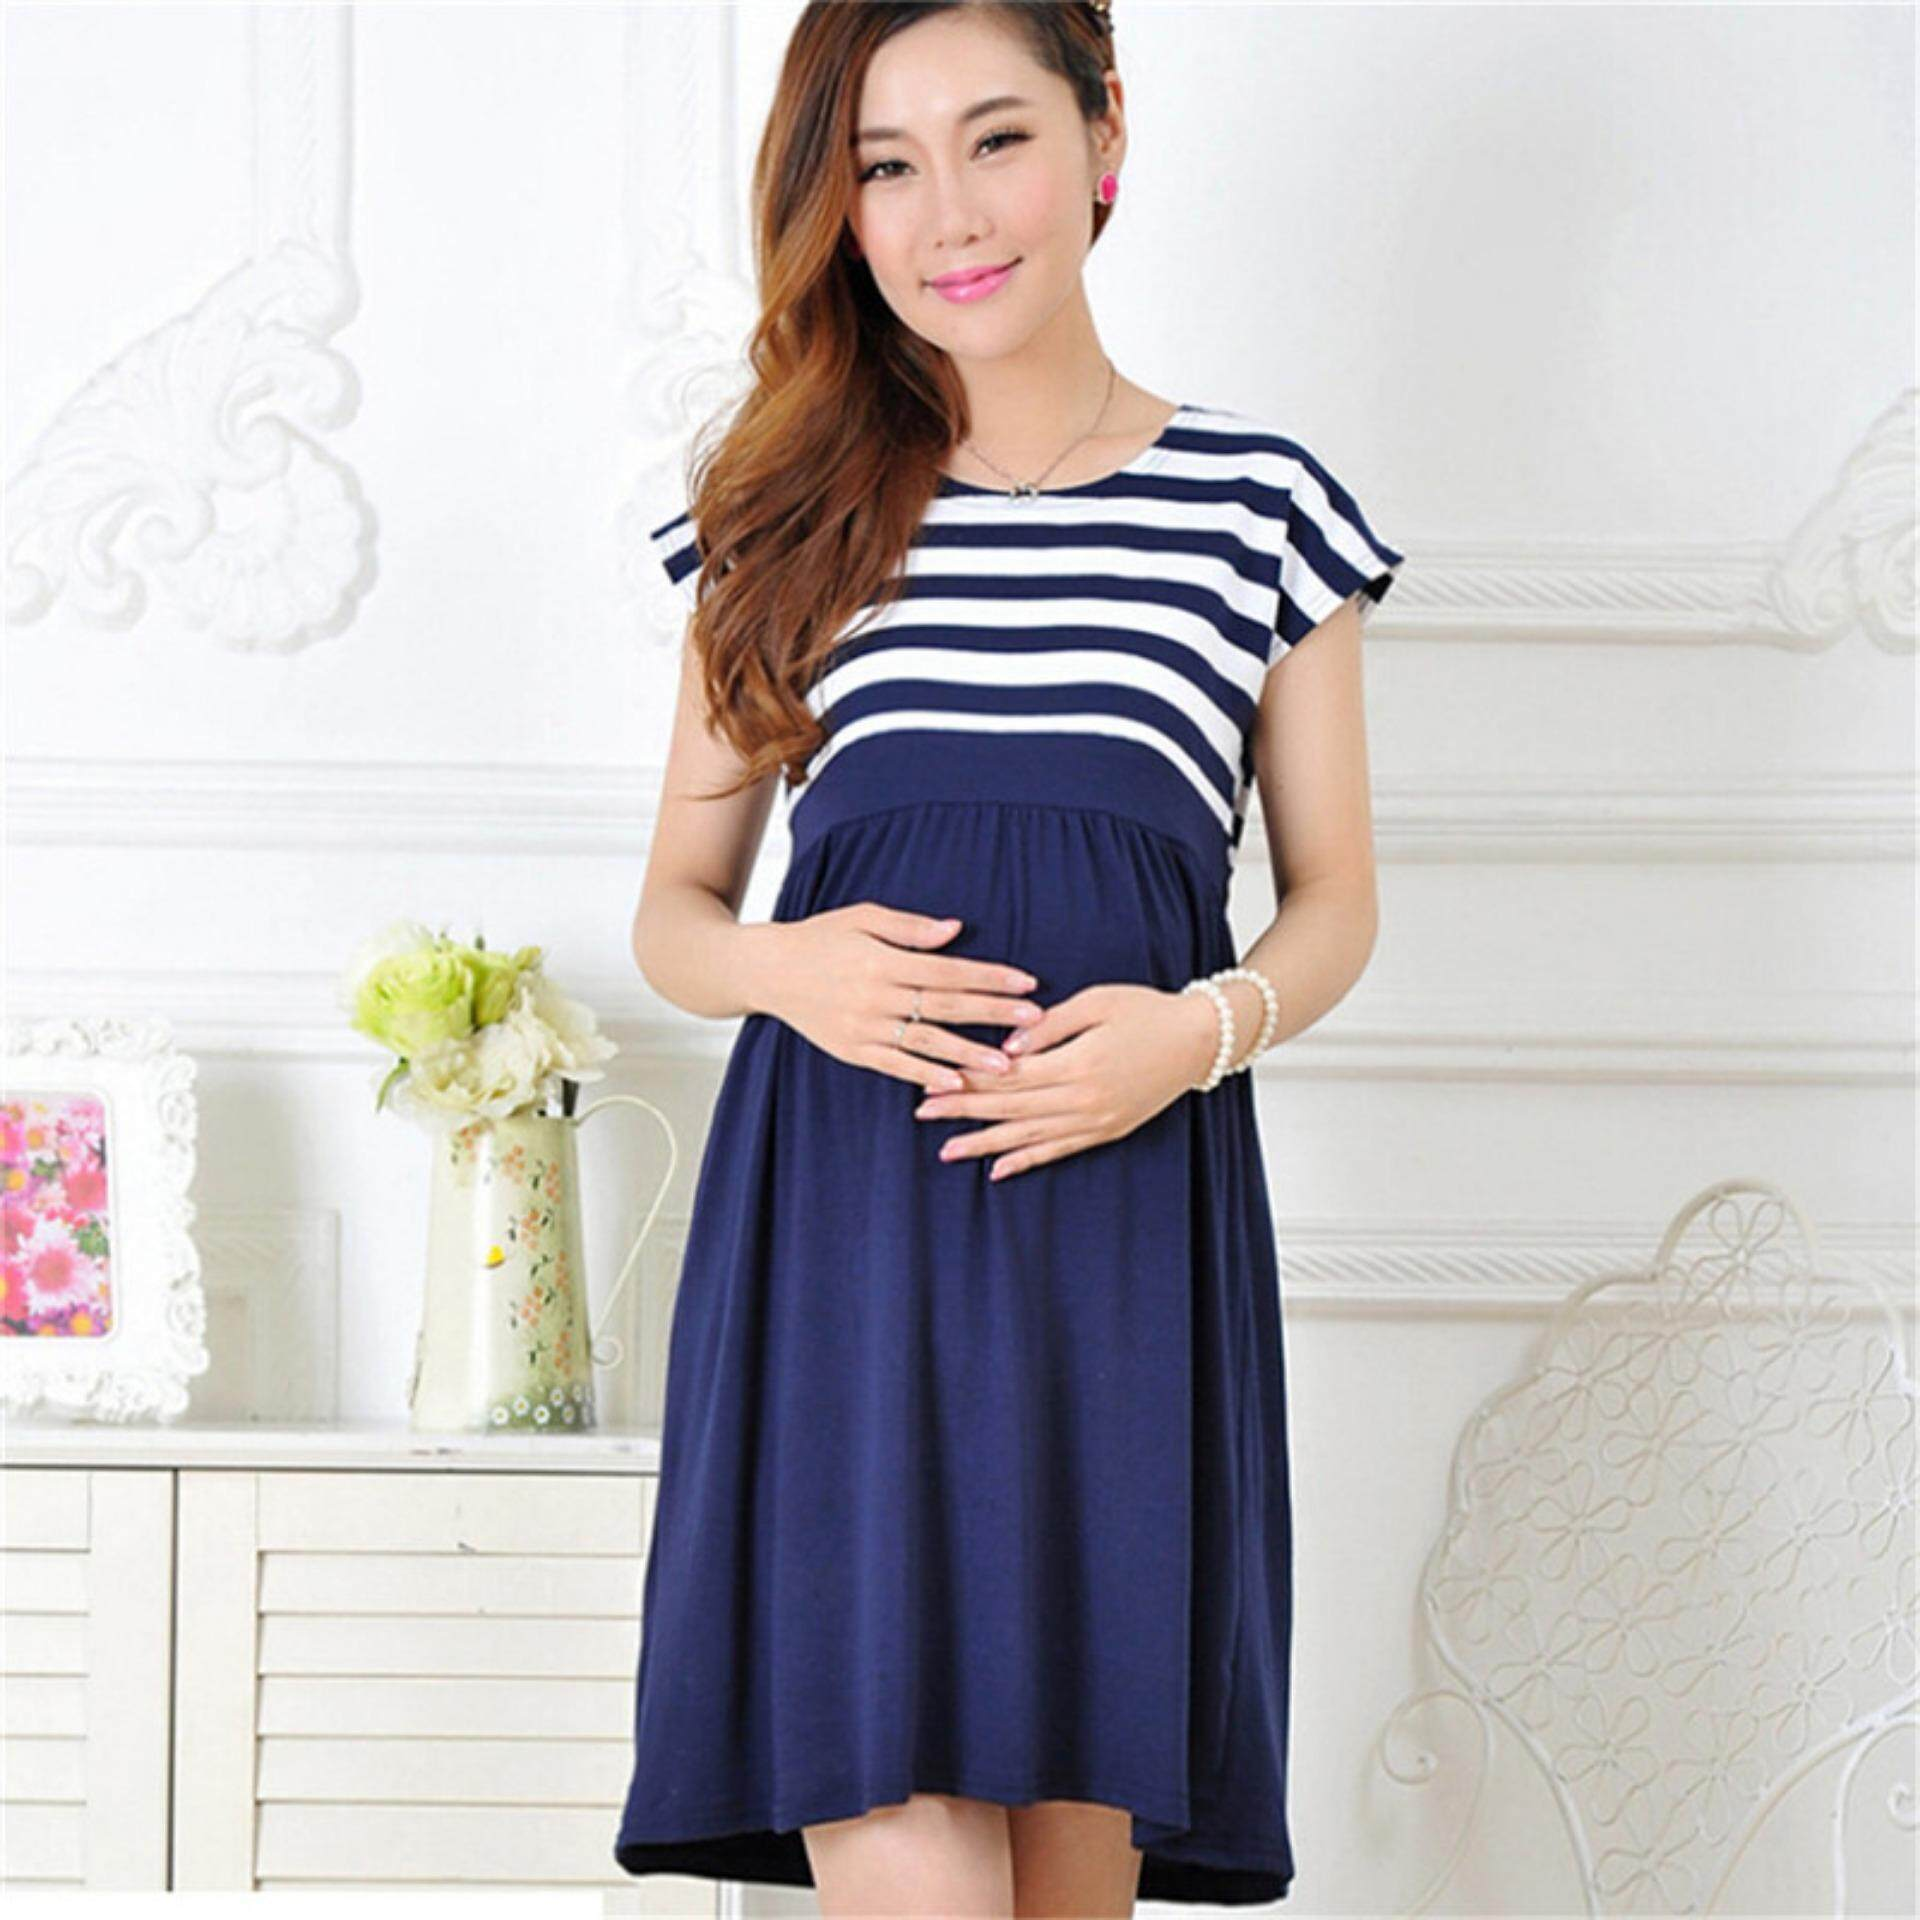 Maternity Maternity Dresses - Buy Maternity Maternity Dresses at ...